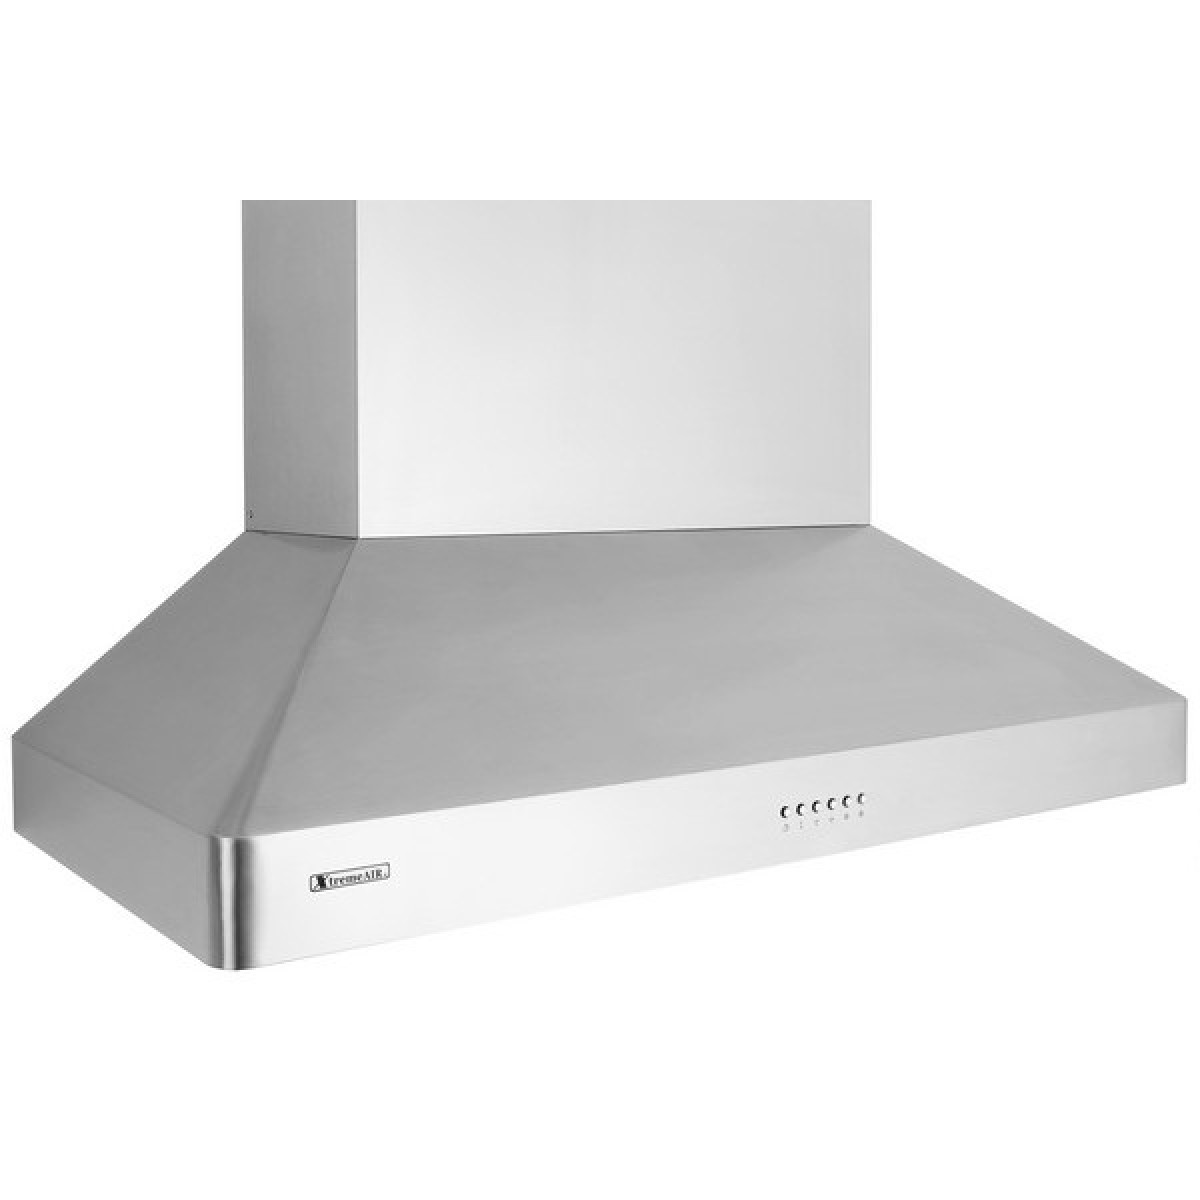 Xtremeair 48 Inch Wall Mount Stainless Steel Range Hood